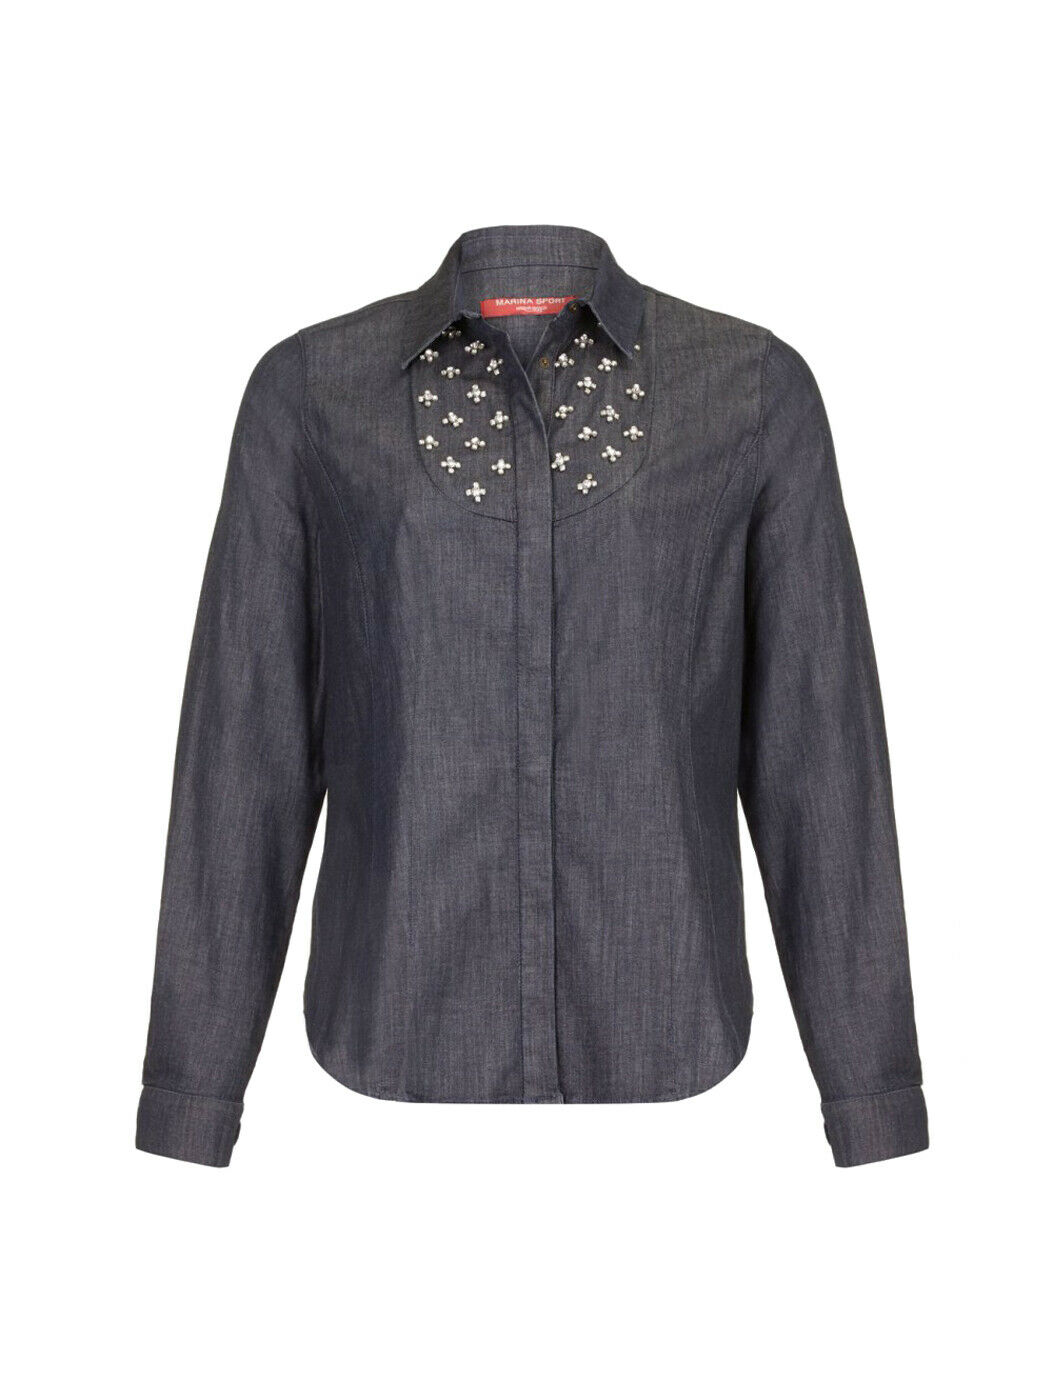 MARINA RINALDI damen Dark Wash Bario Embellished Denim Blouse  NWT